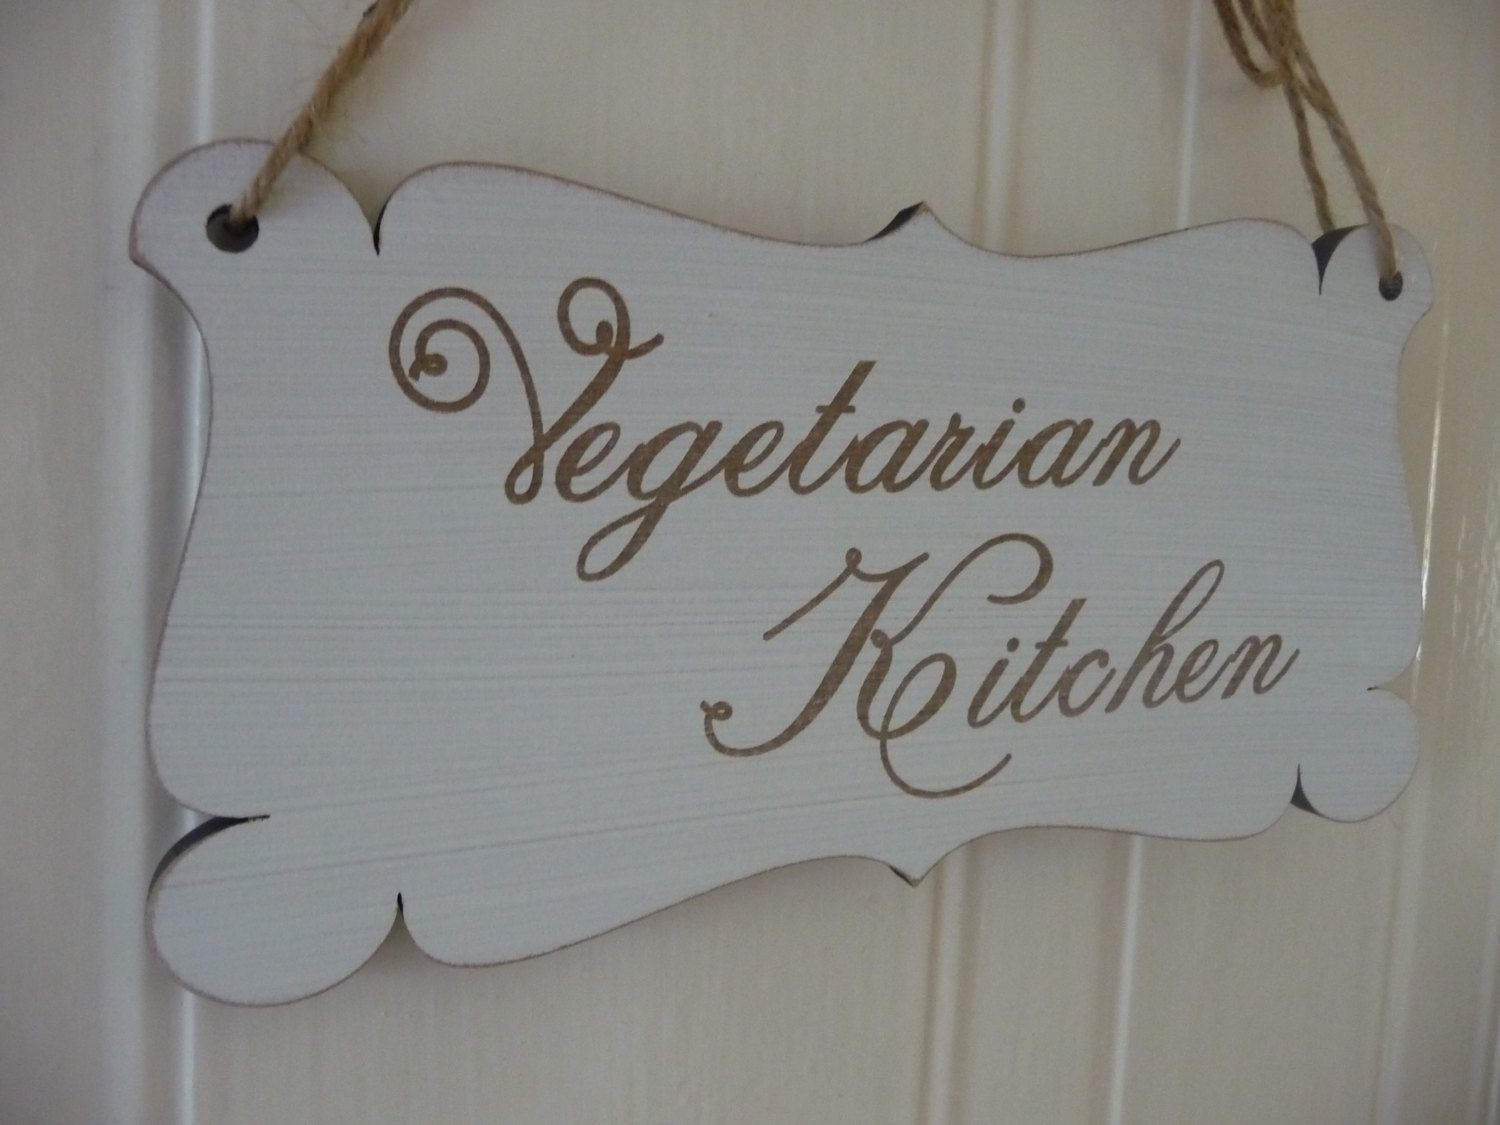 Shabby Chic Kitchen Signs : Vegetarian kitchen sign shabby chic kitchen door sign vegan